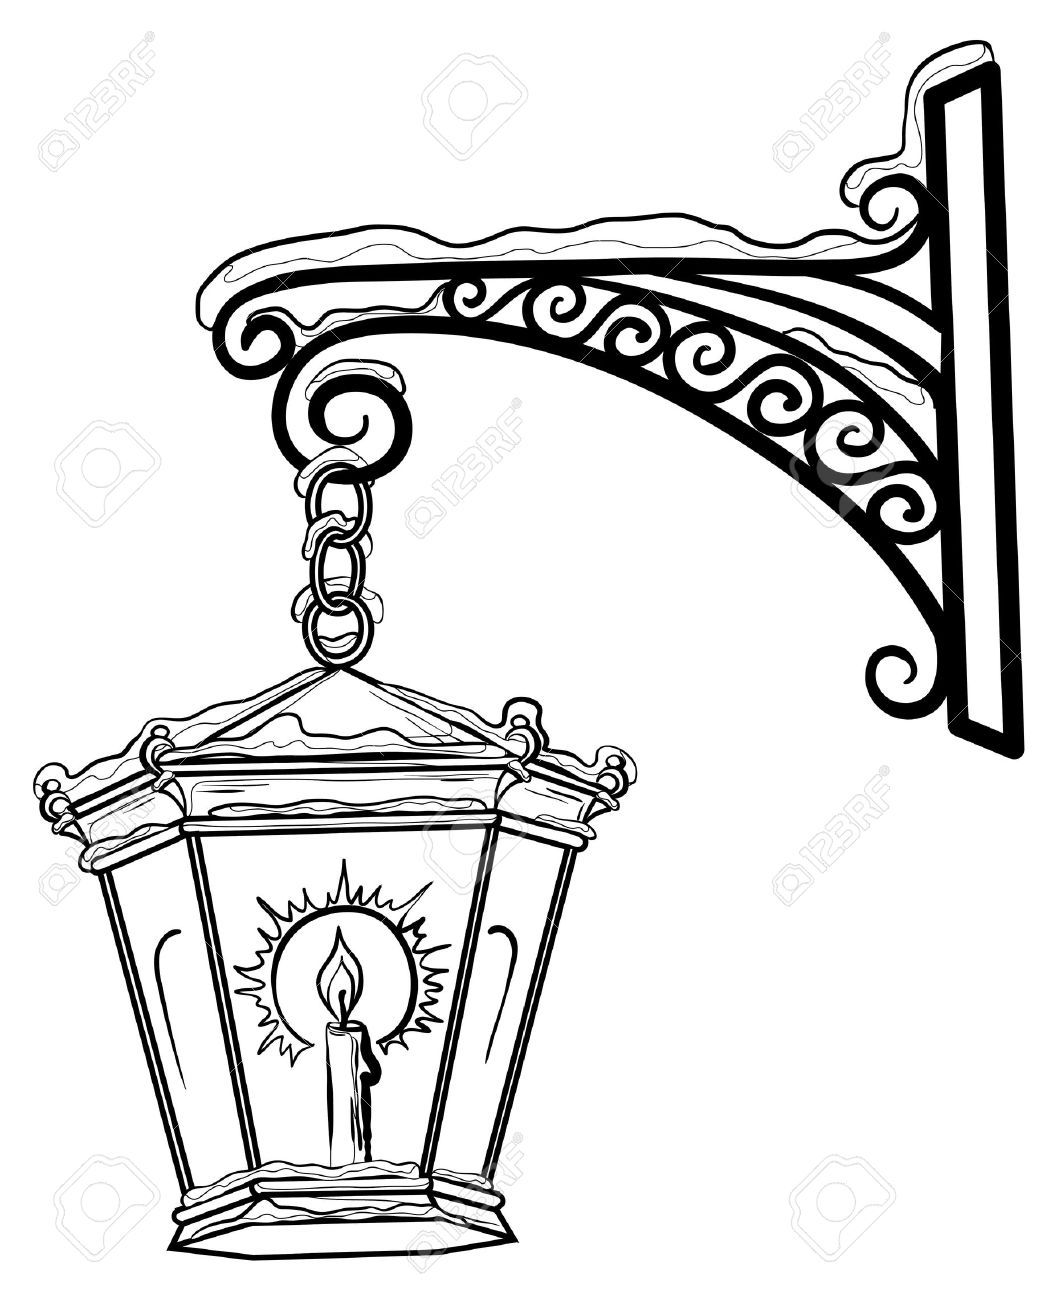 Lamp Drawing Easy : drawing, Street, Stock, Illustrations,, Cliparts, Royalty, Vectors, Lamp,, Drawings, Sketches, Simple,, Lantern, Drawing